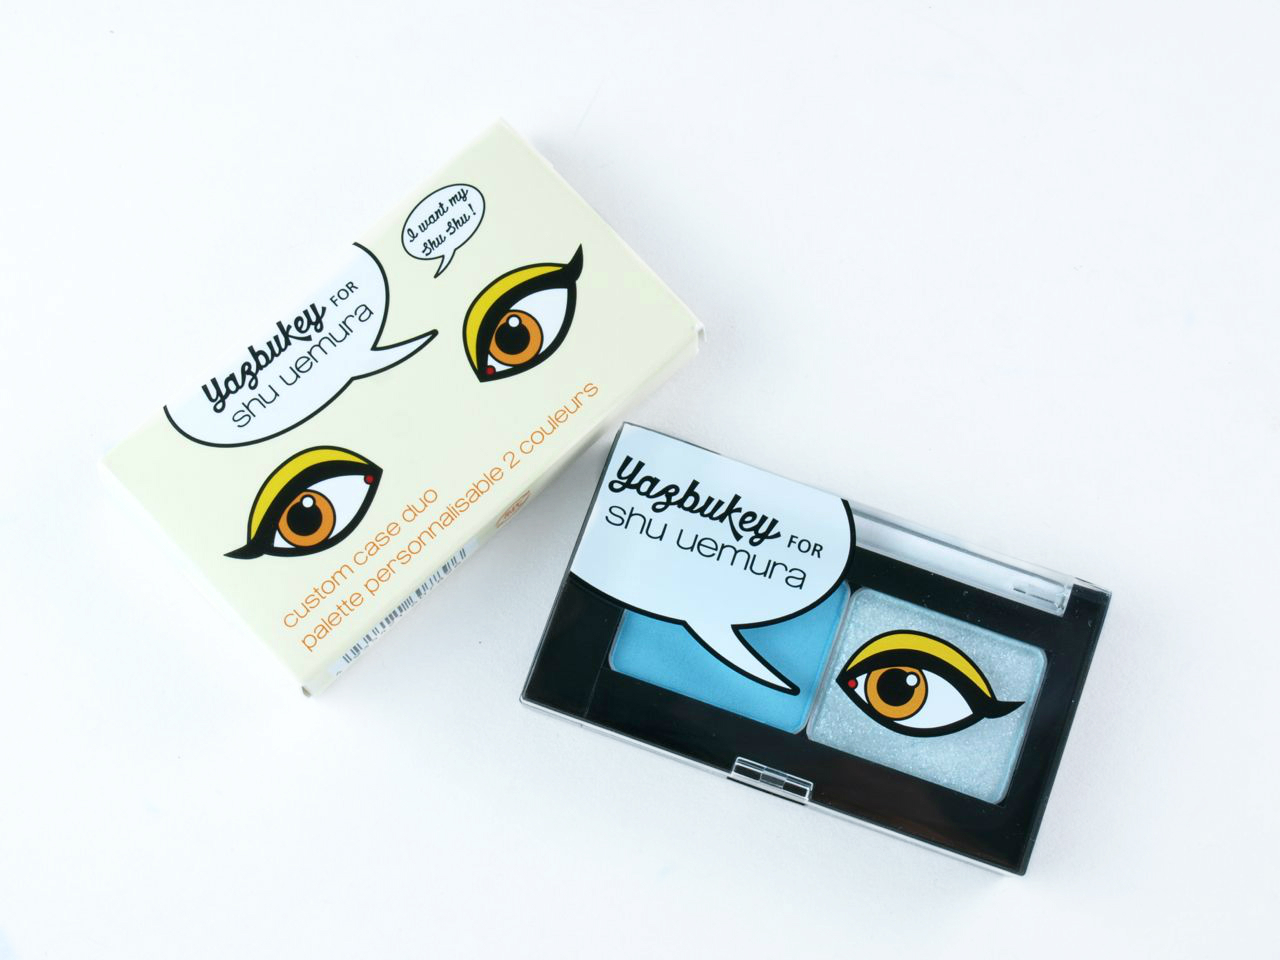 Yazbukey for Shu Uemura Custom Duo Eyeshadows & Dazzling Flare Tina False Lashes: Review and Swatches